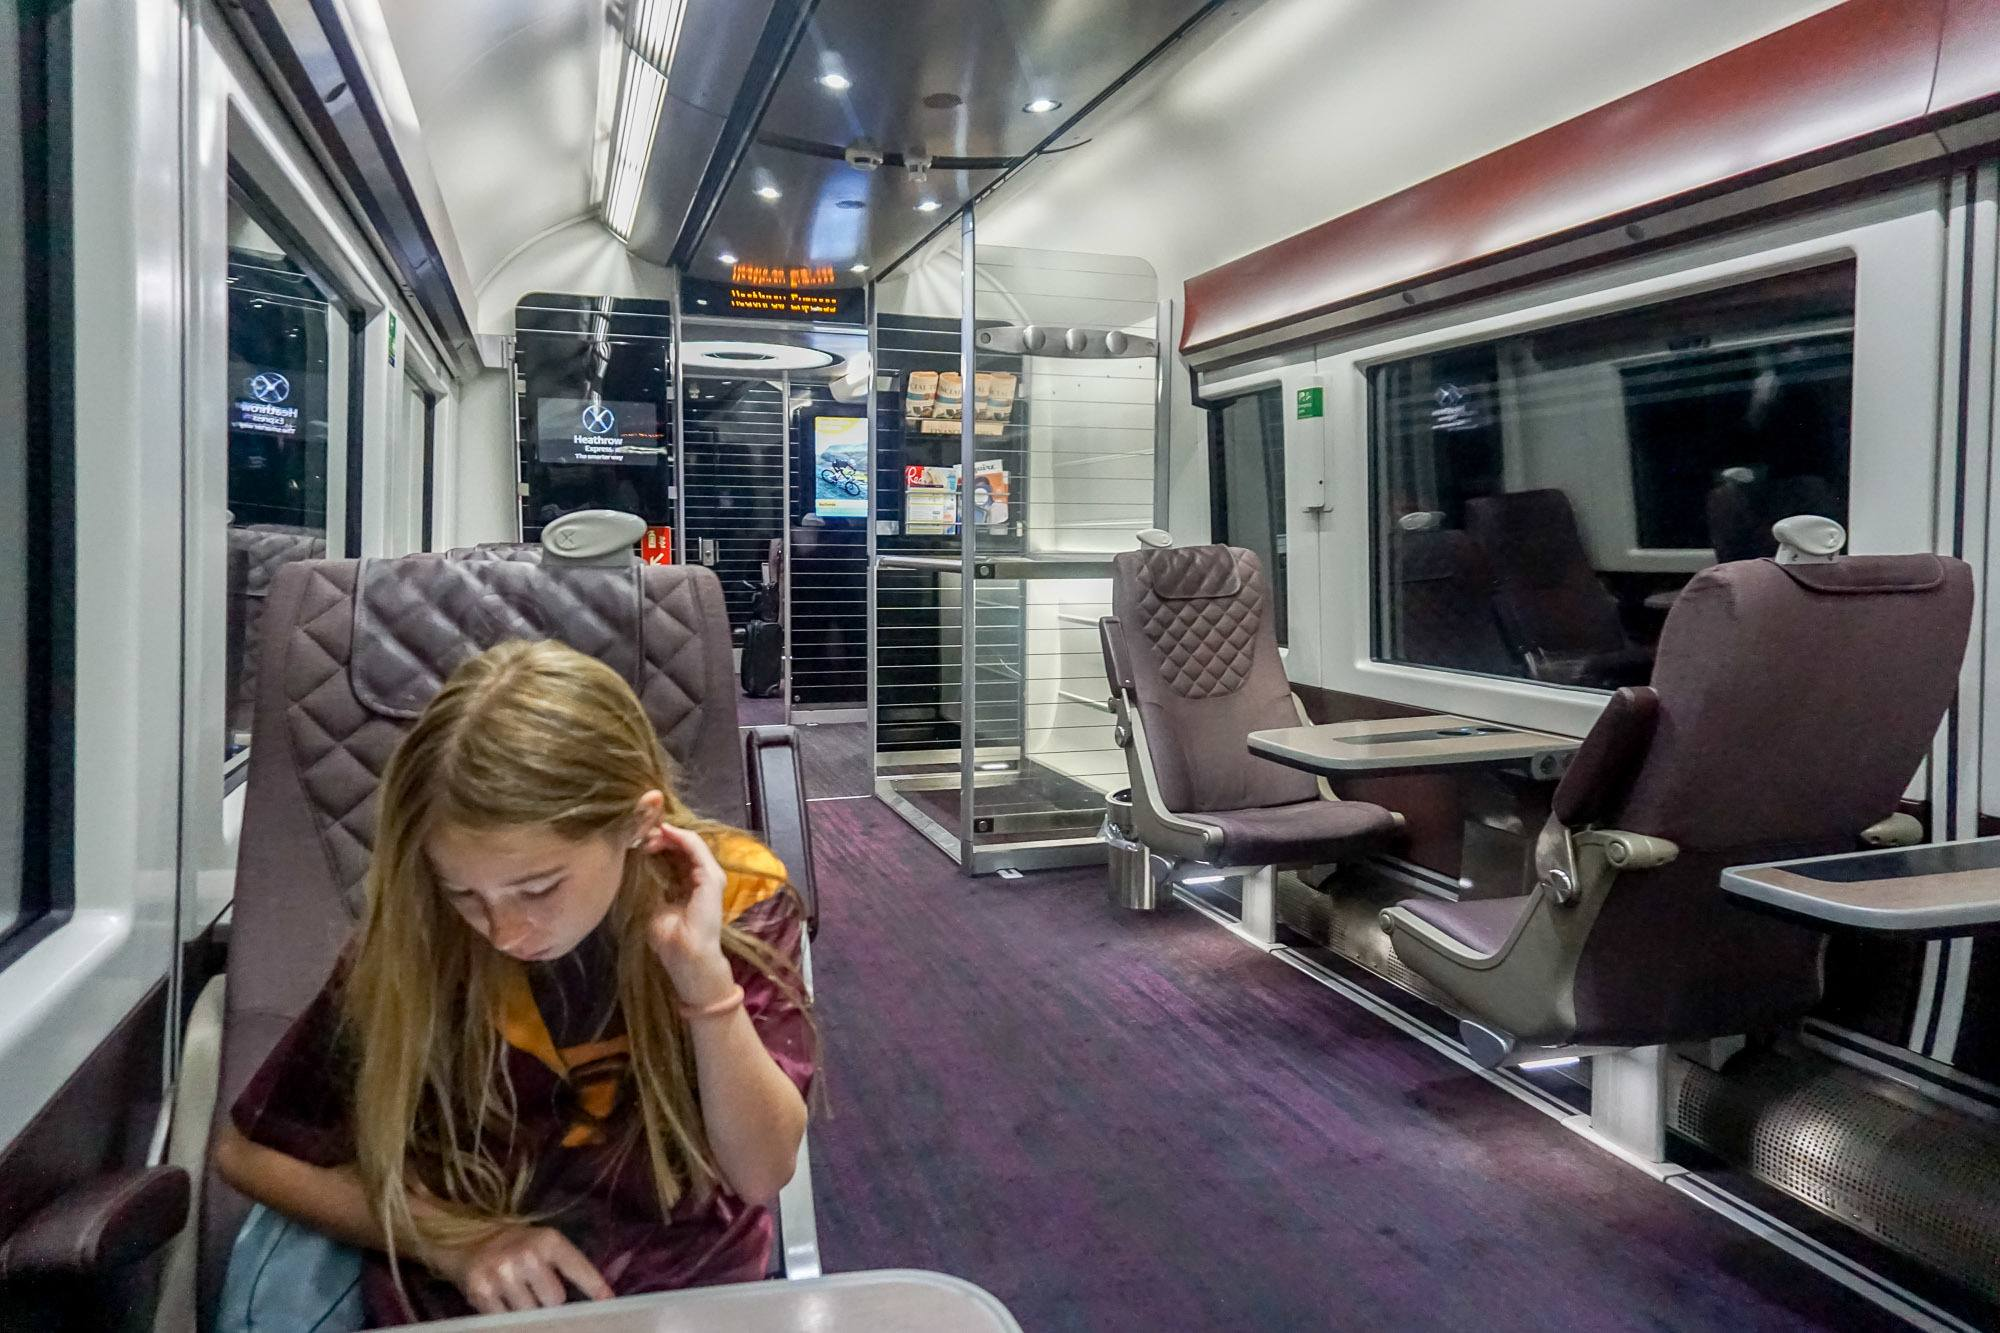 Kids under 15 ride free on the Heathrow Express to and from London.